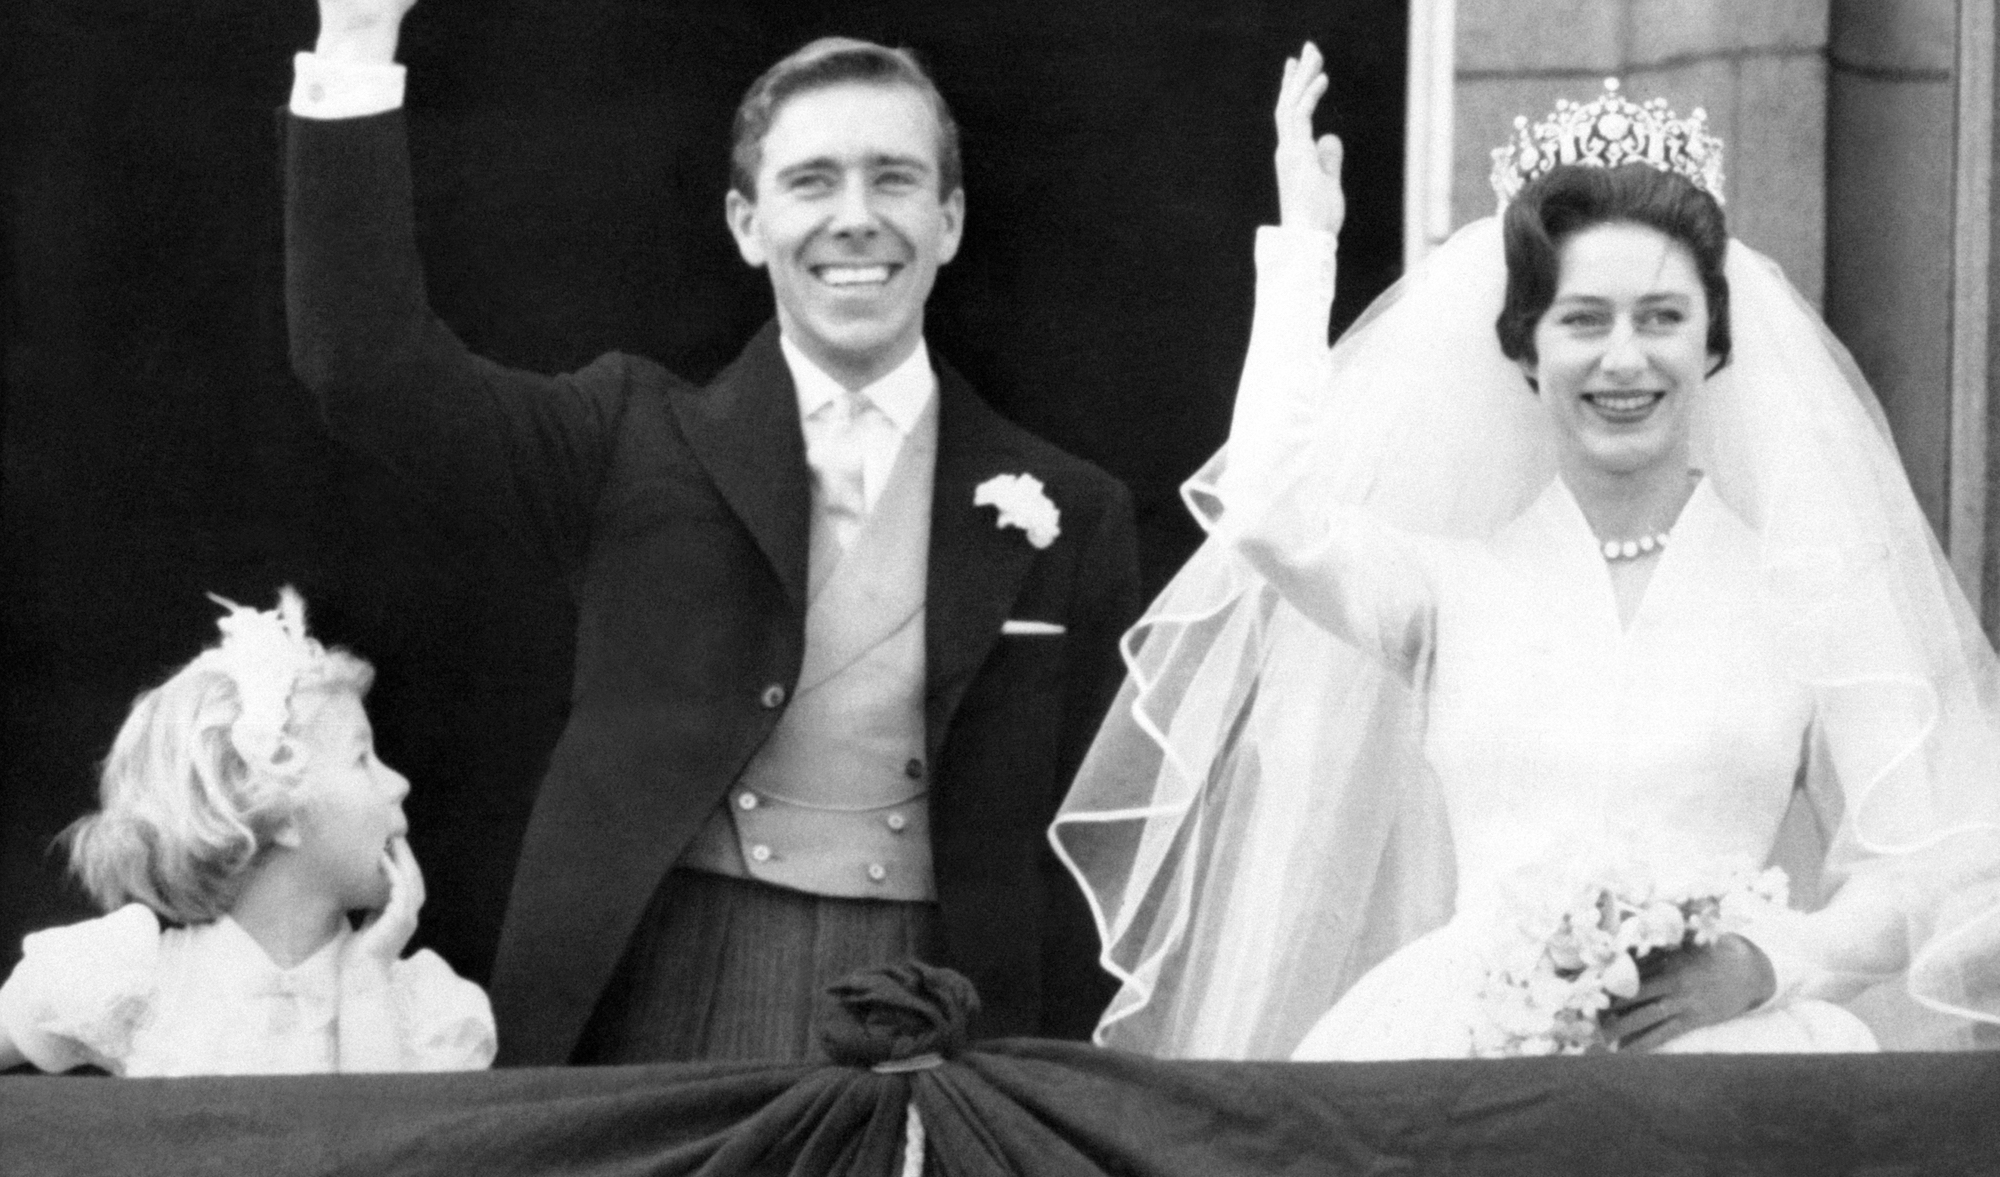 Princess Margaret S Wedding Details On The Dress Guests And Bridesmaids